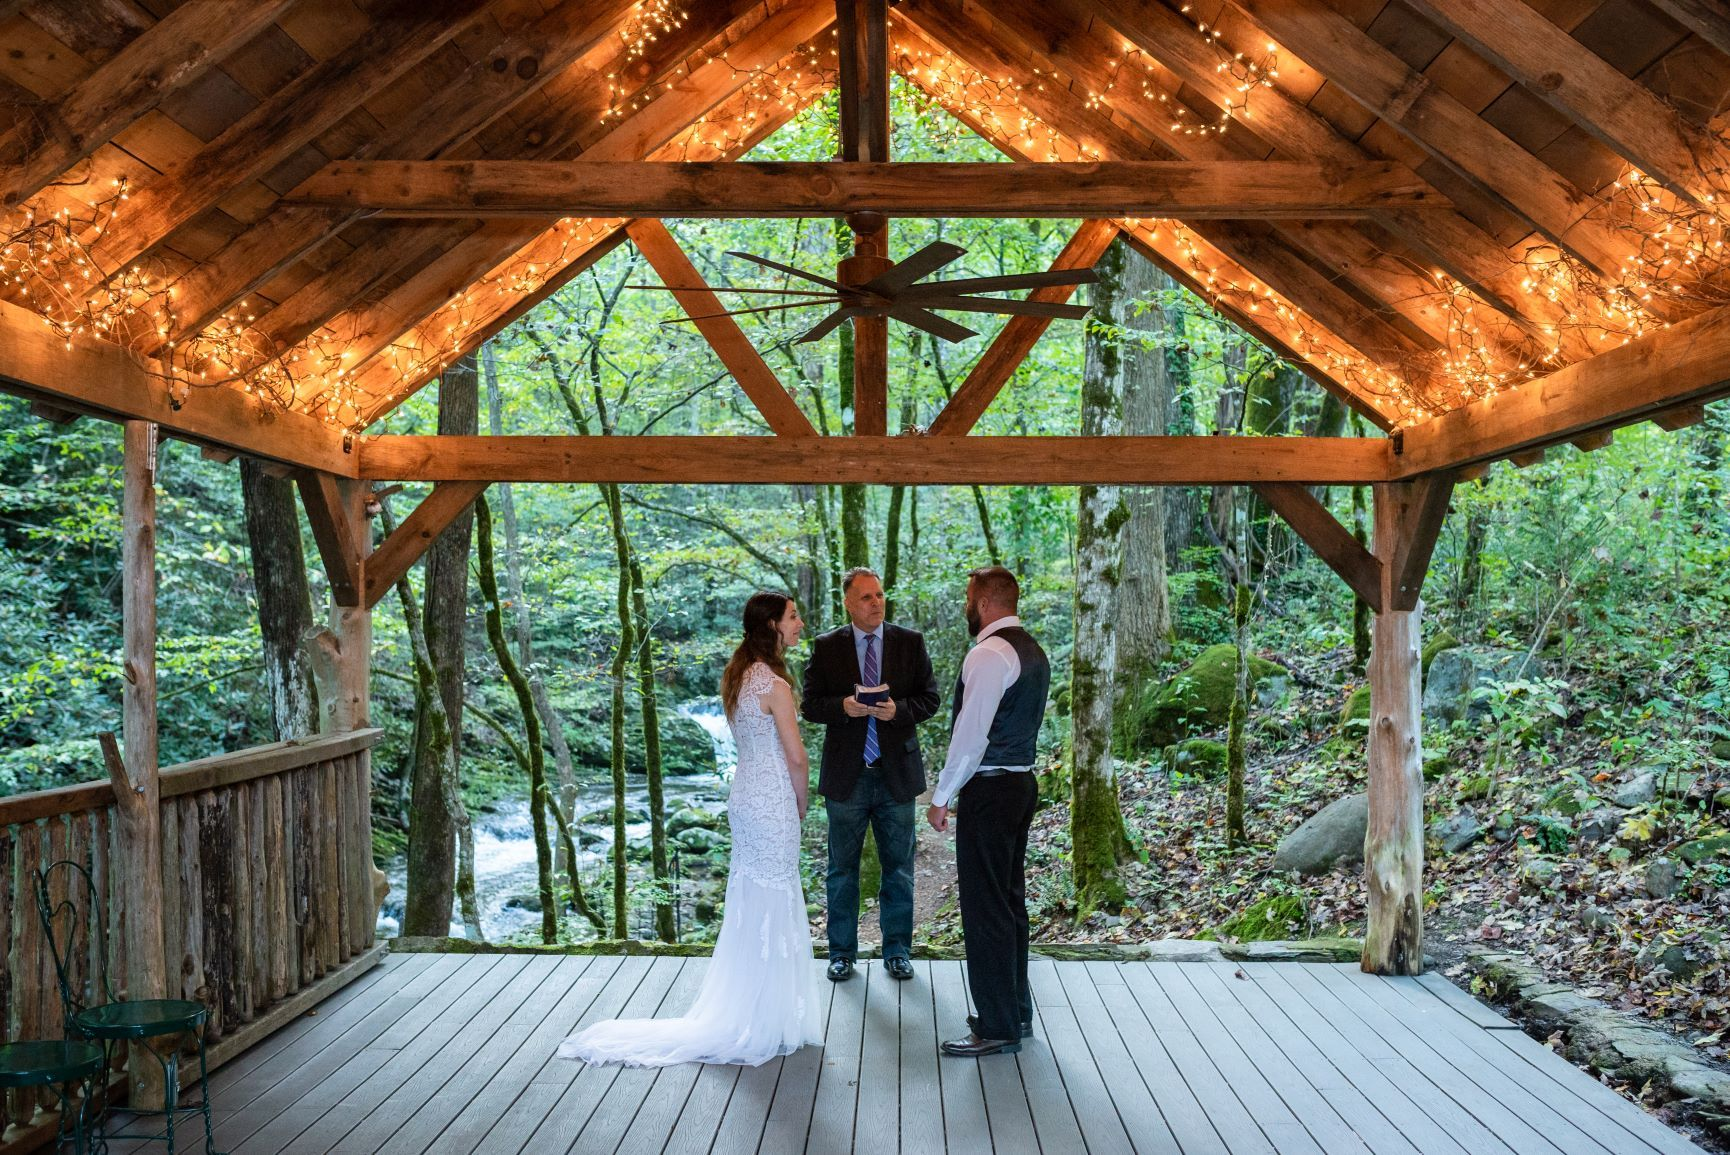 Eloping To Gatlinberg The Ultimate 2021 Guide To Gatlinberg Elopement Packages Gatlinburg Weddings Gatlinburg Elopement Cheap Wedding Packages